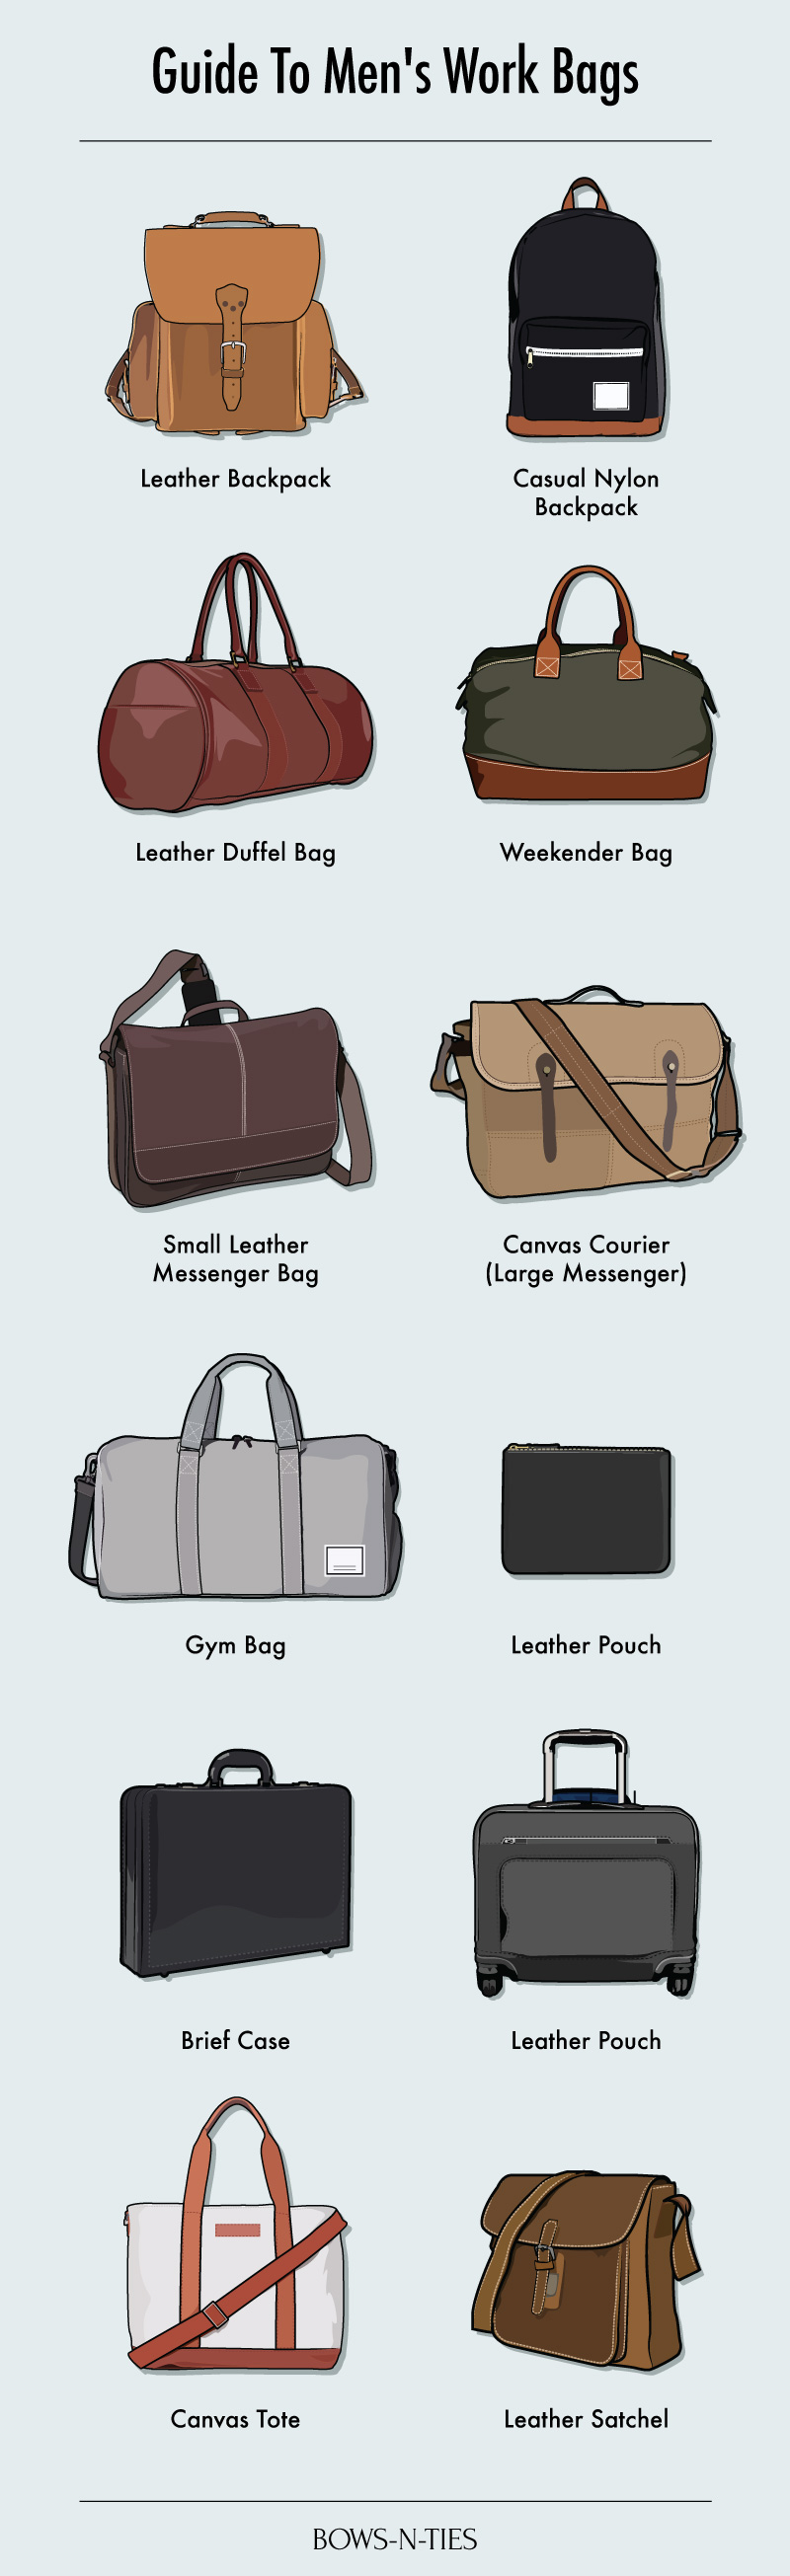 Guide To Menswear Bags